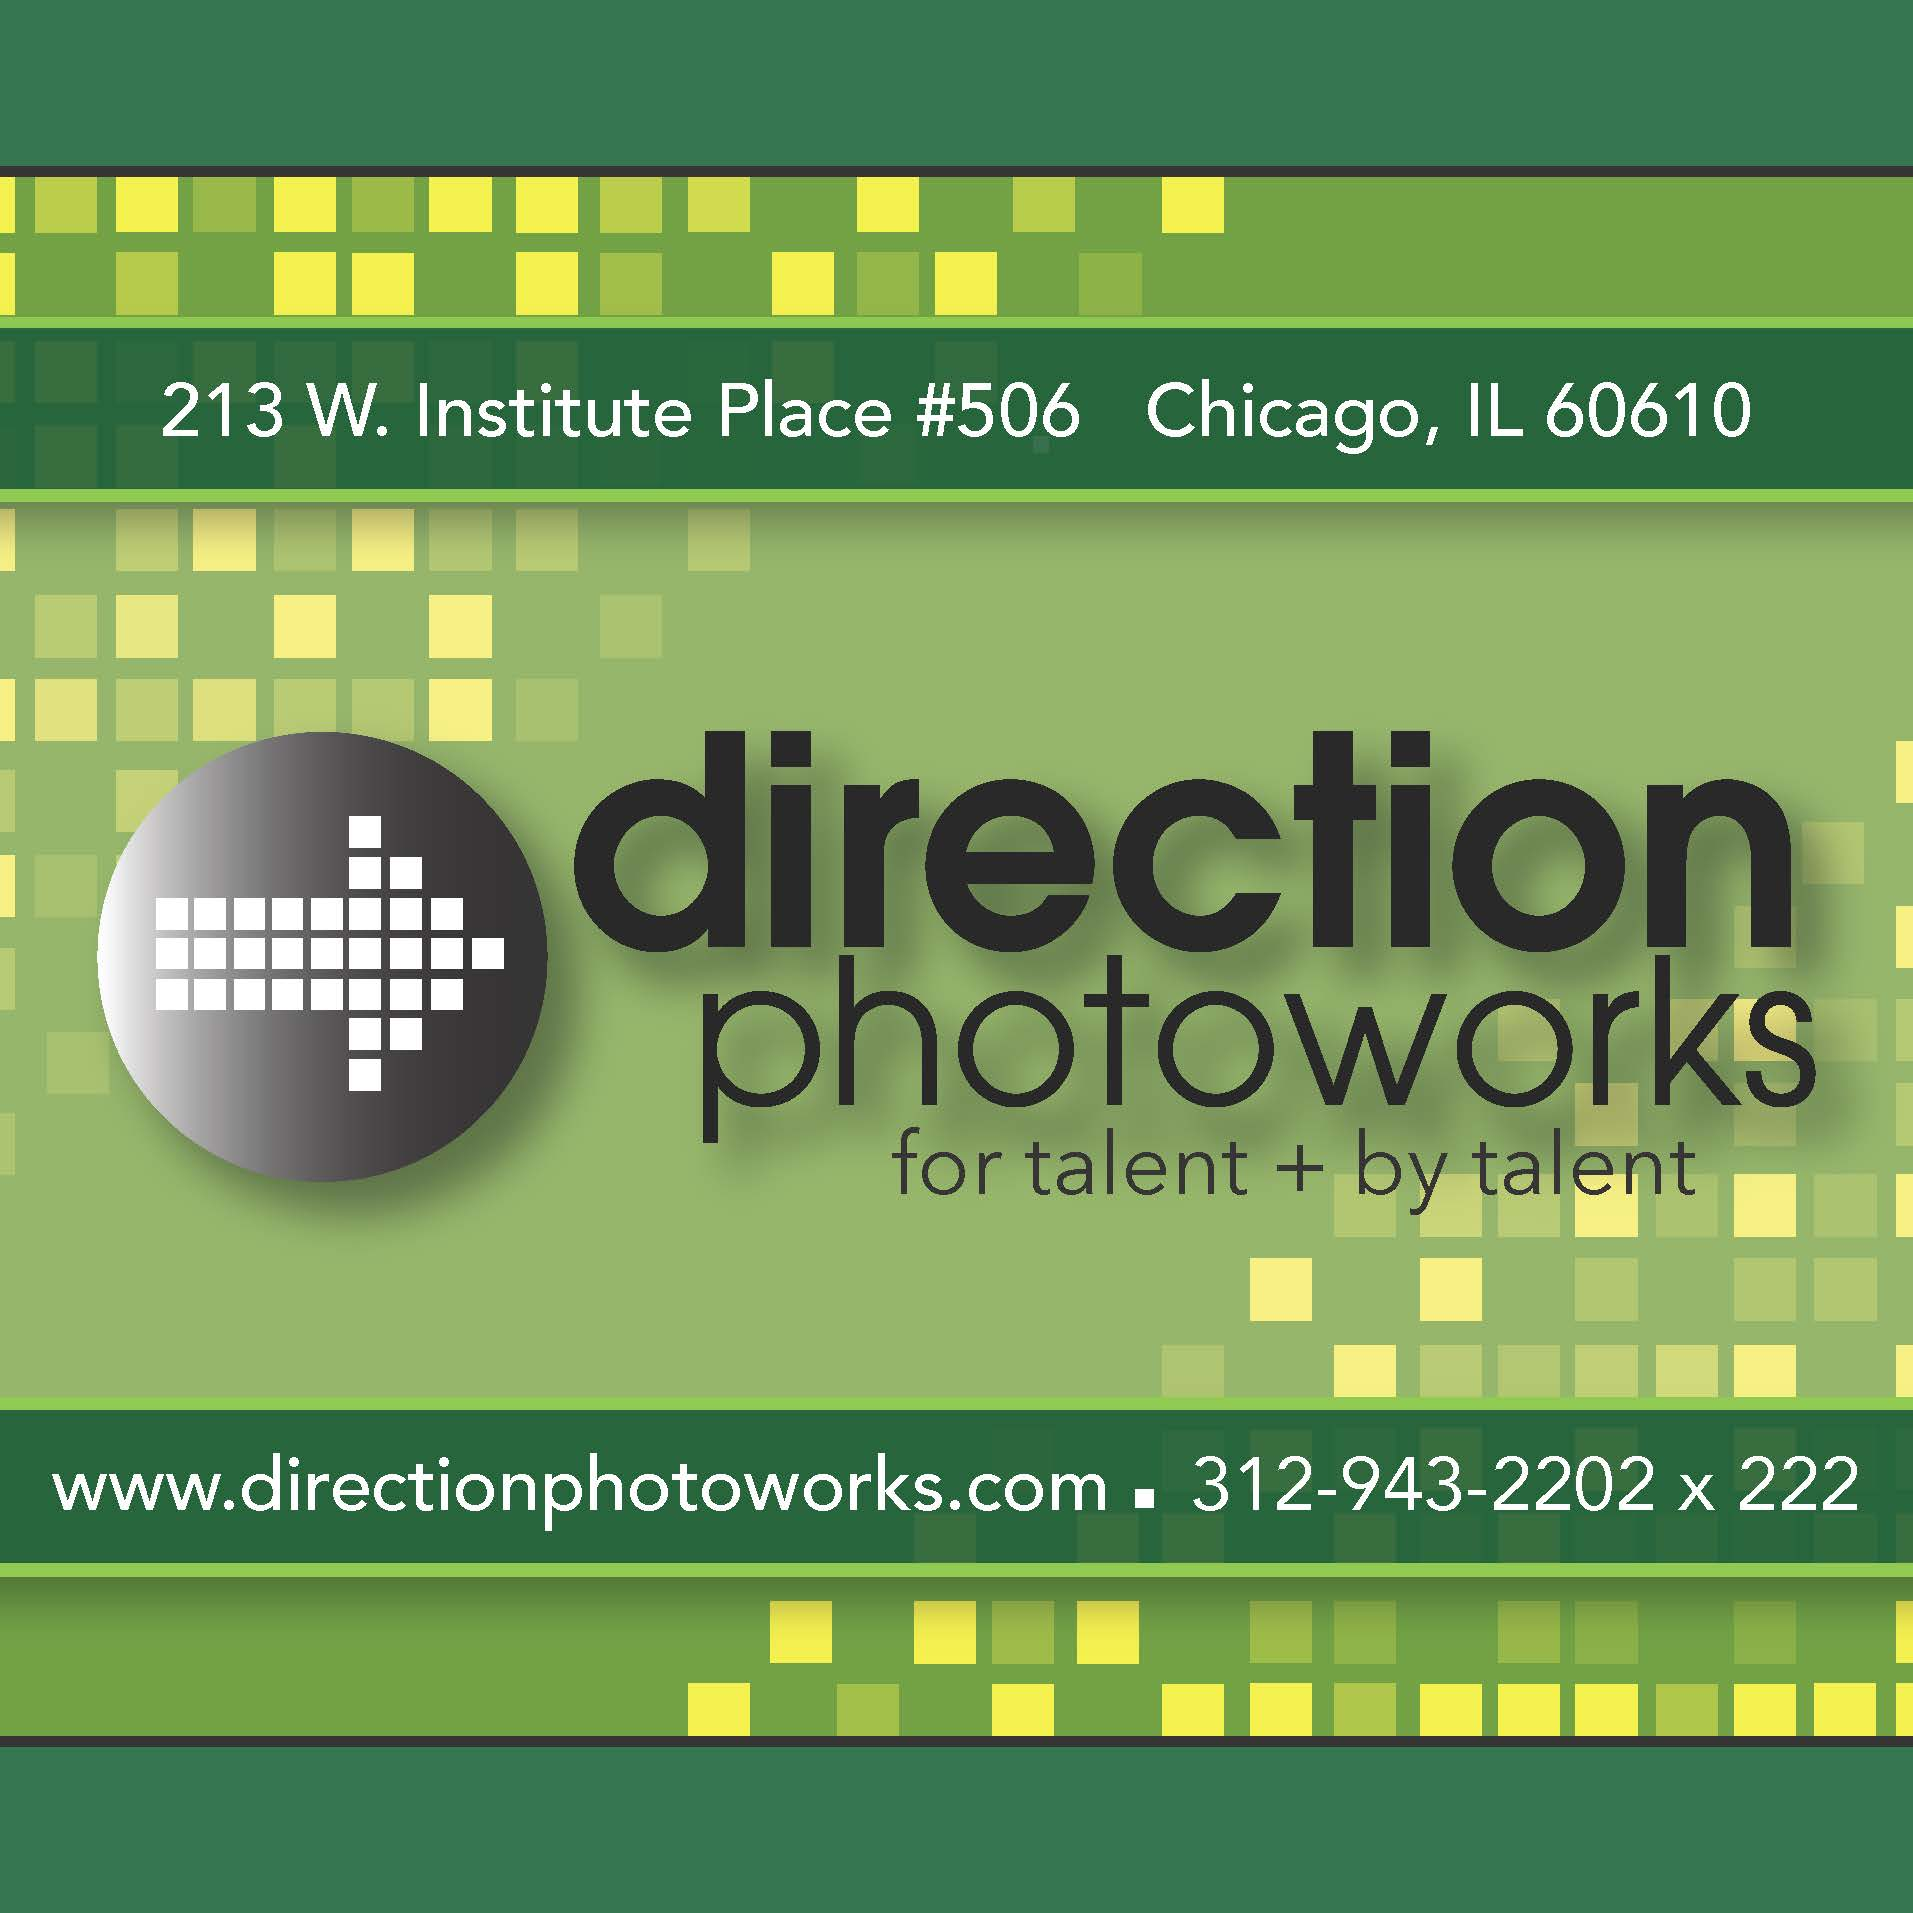 Direction Photoworks